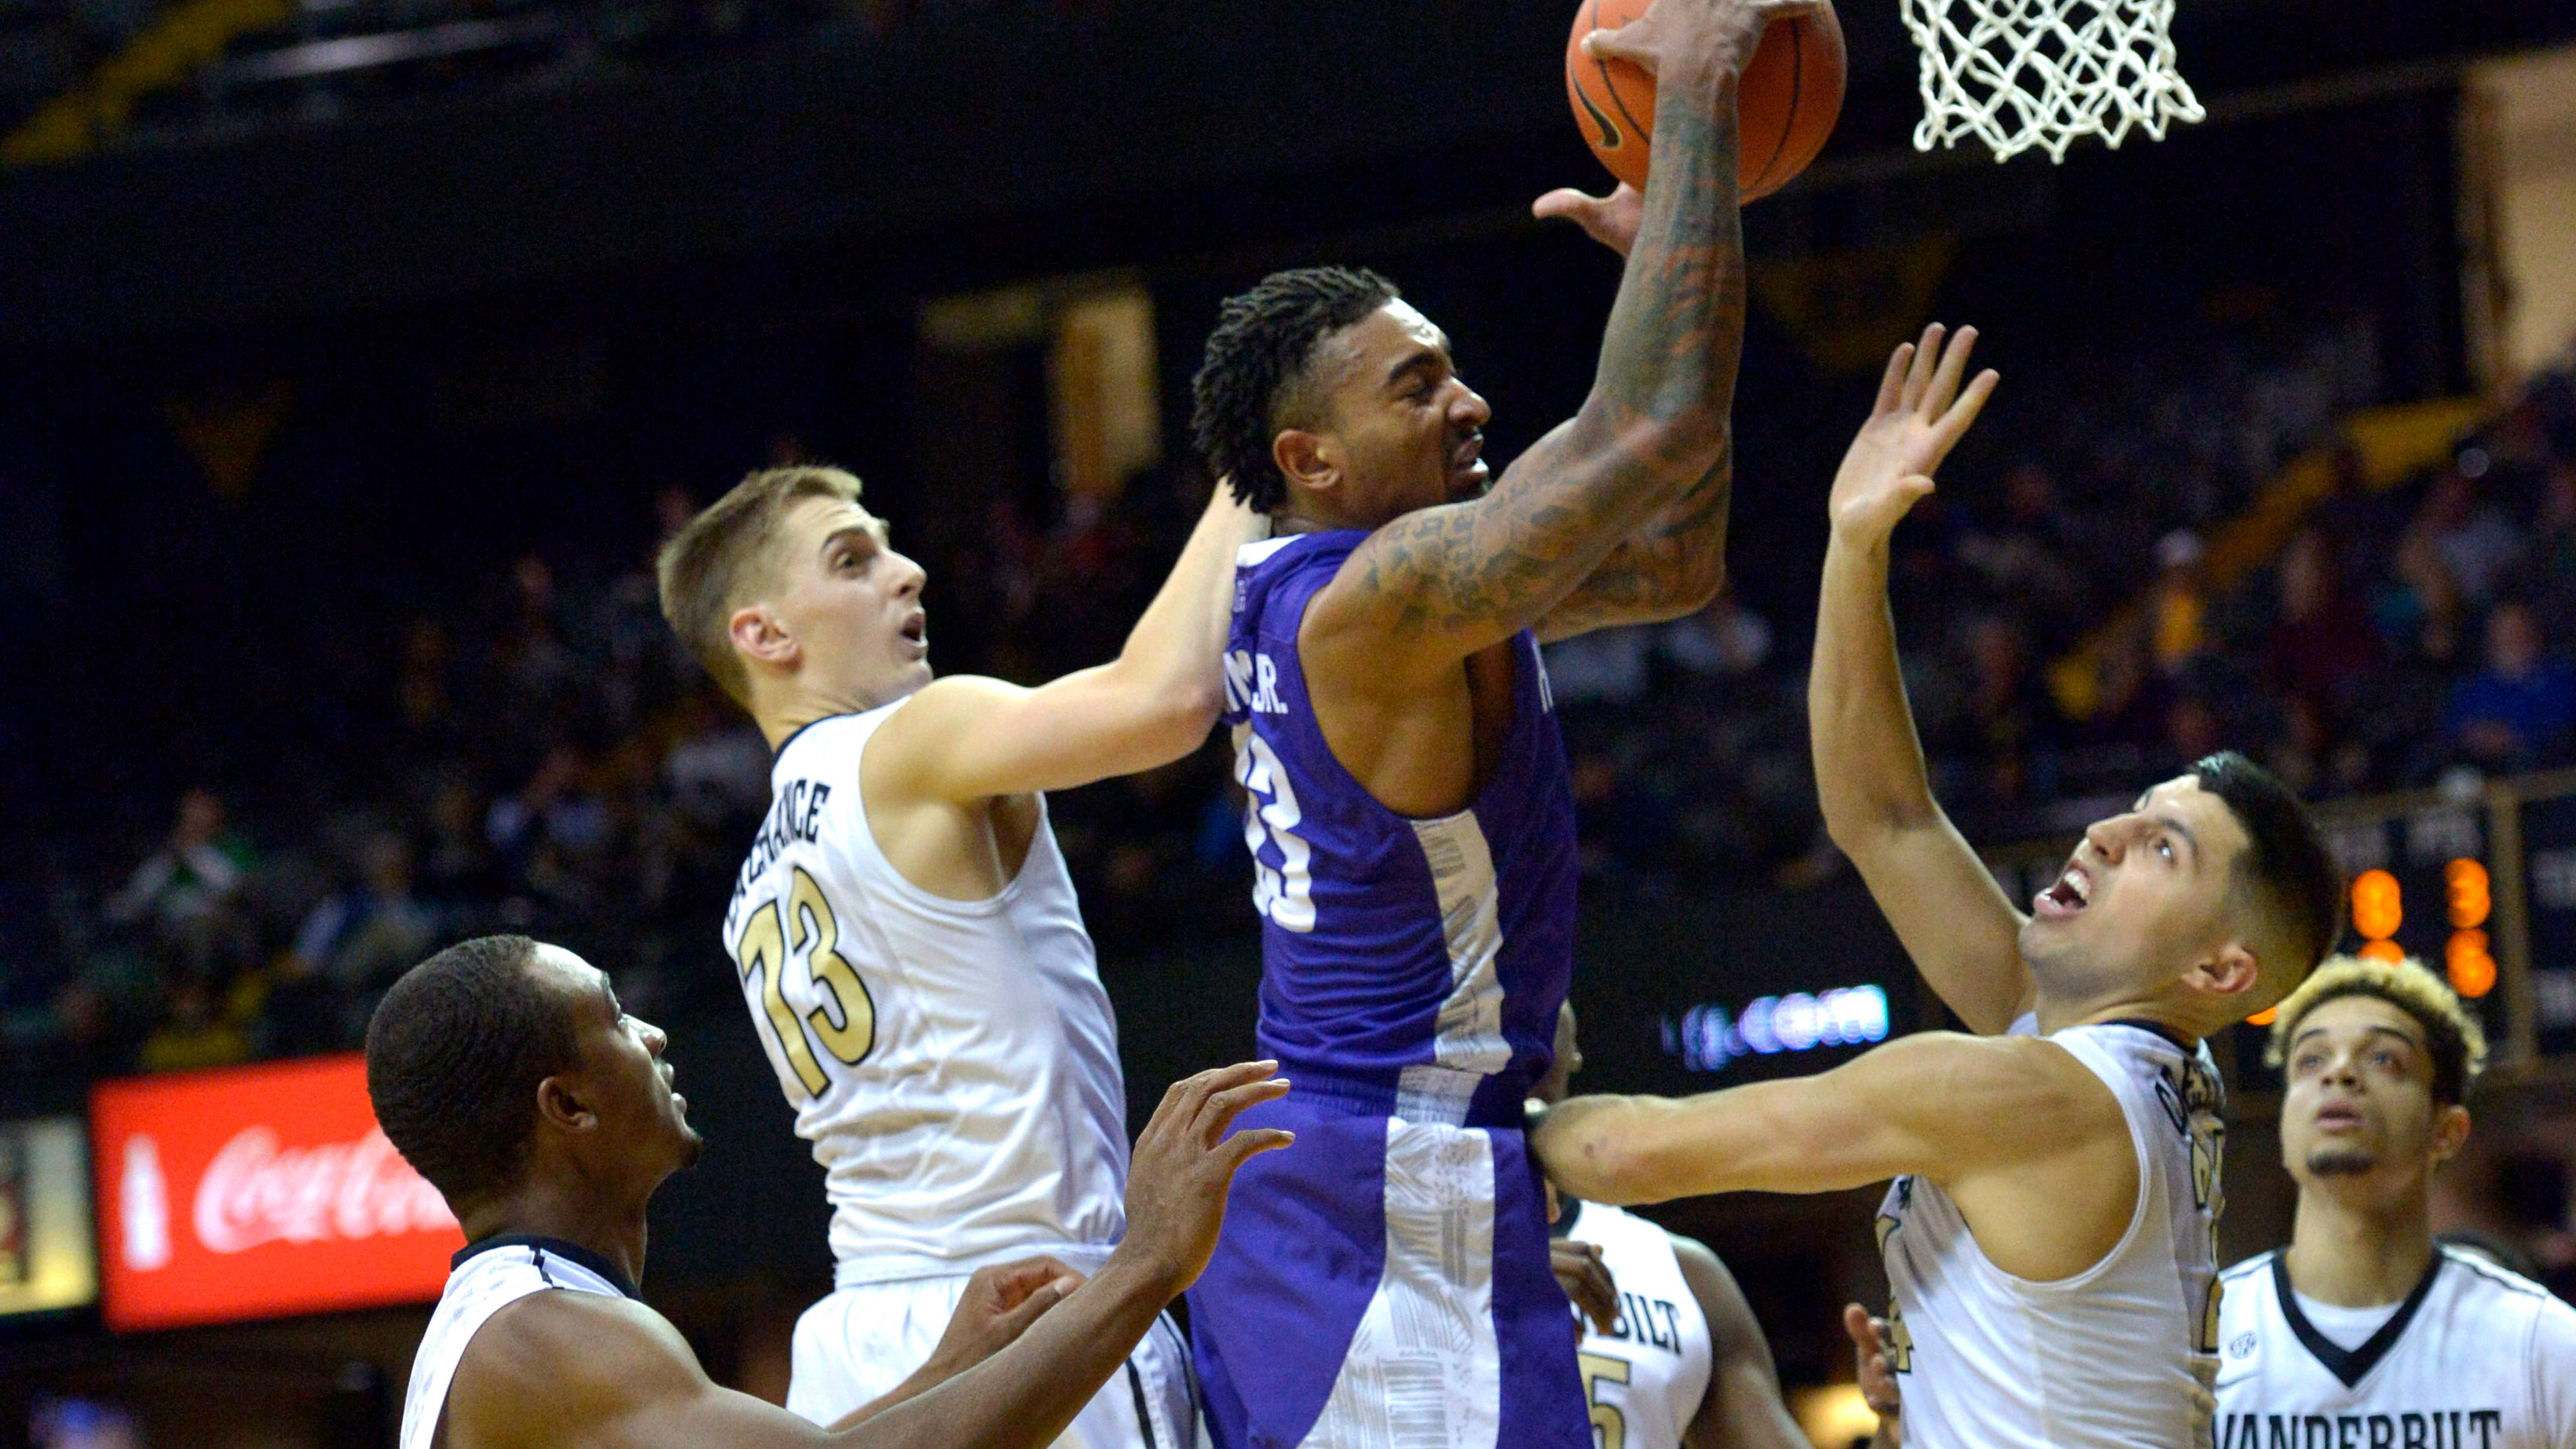 Purdue adds grad transfer Proctor of High Point to roster